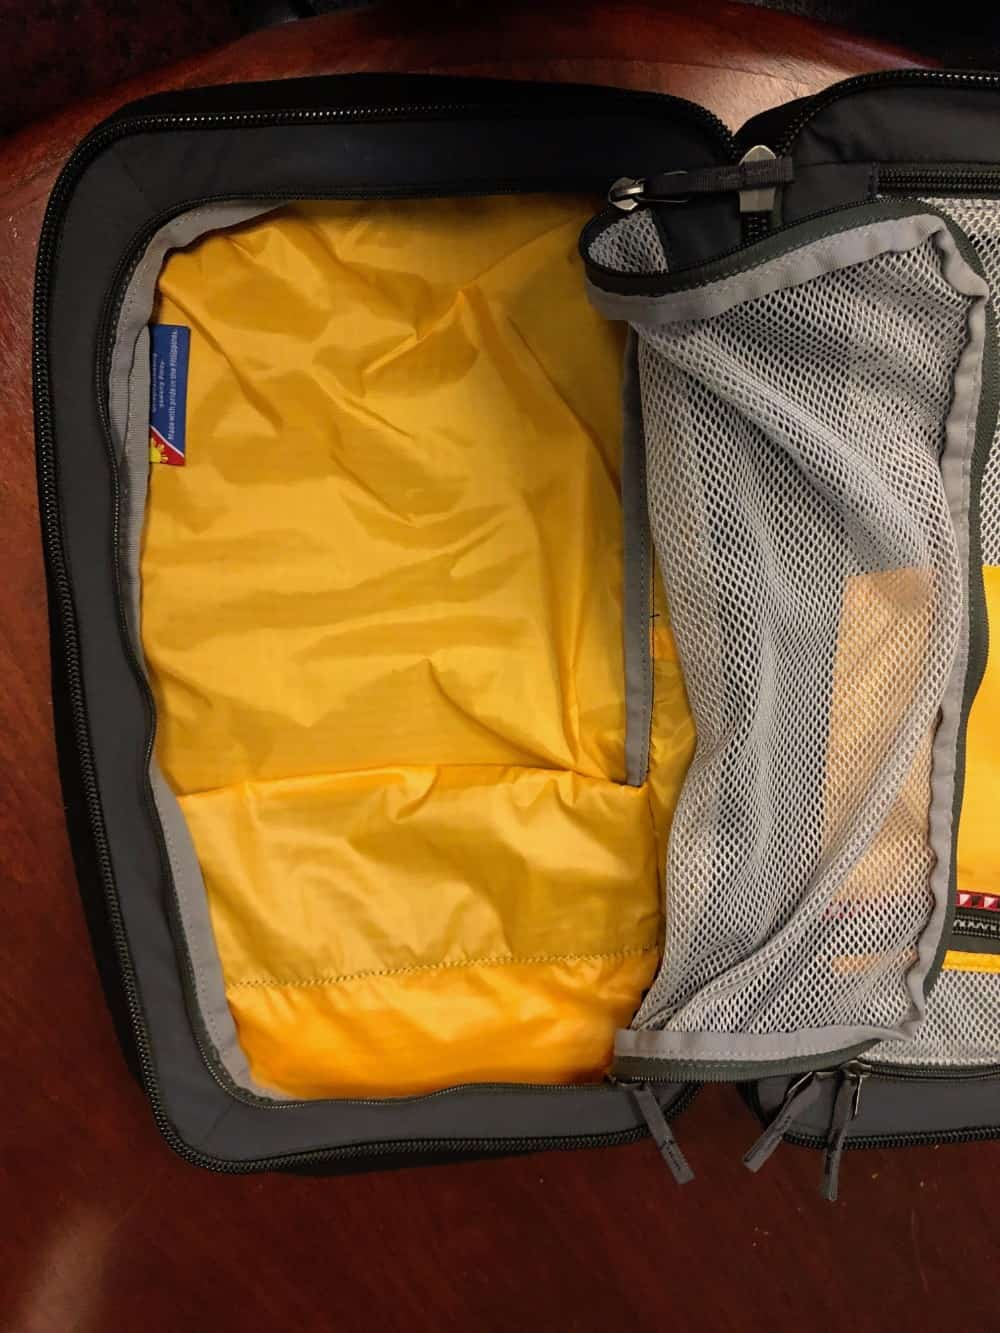 Left storage area with mesh covering unzipped on the Cotopaxi Nazca travel pack.